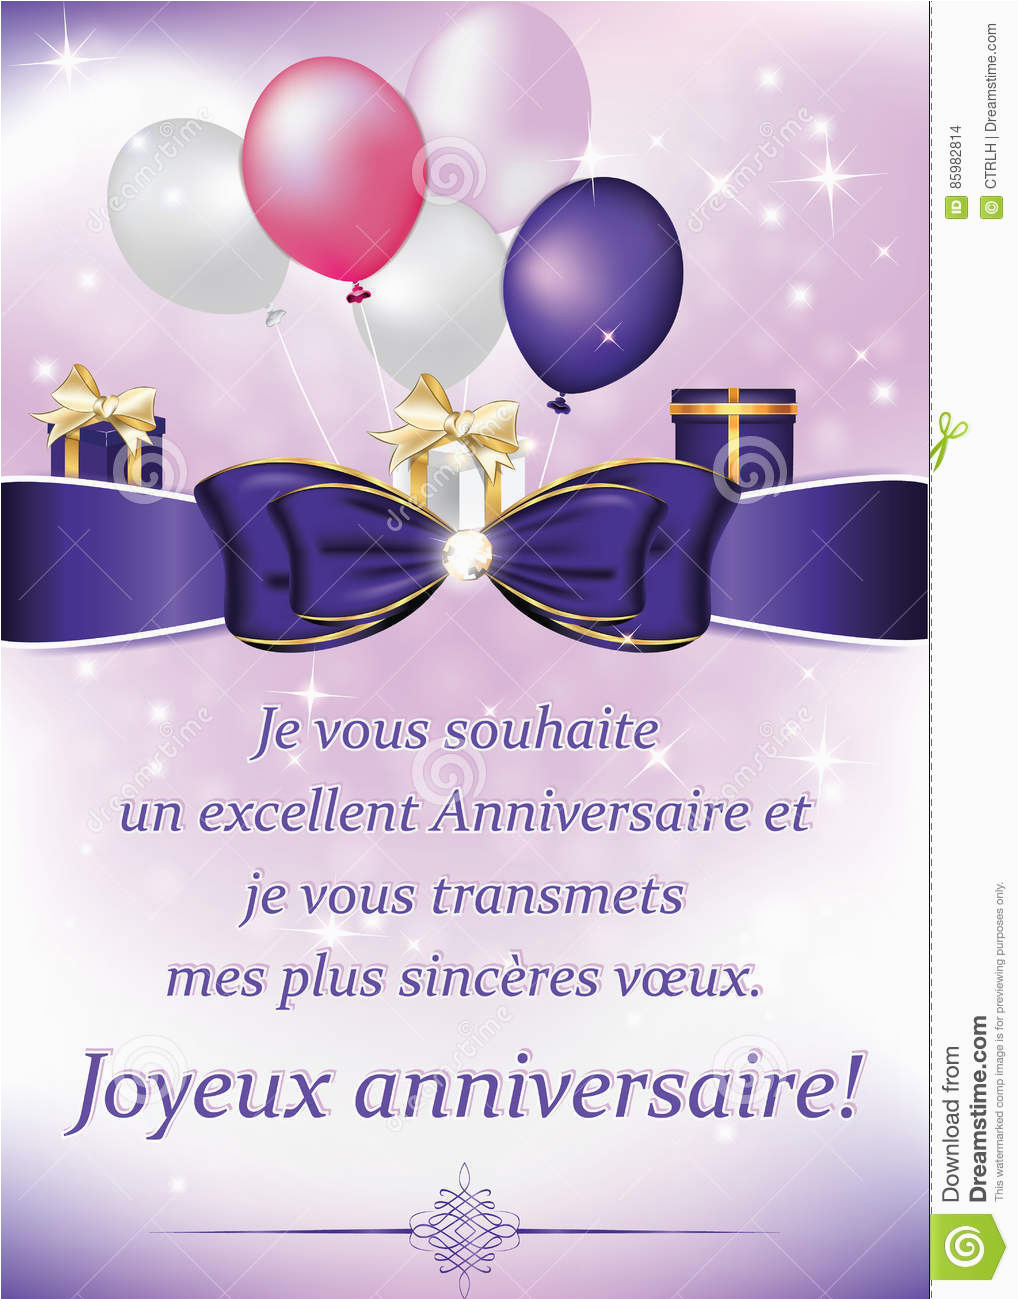 french birthday greeting card with balloons and gifts